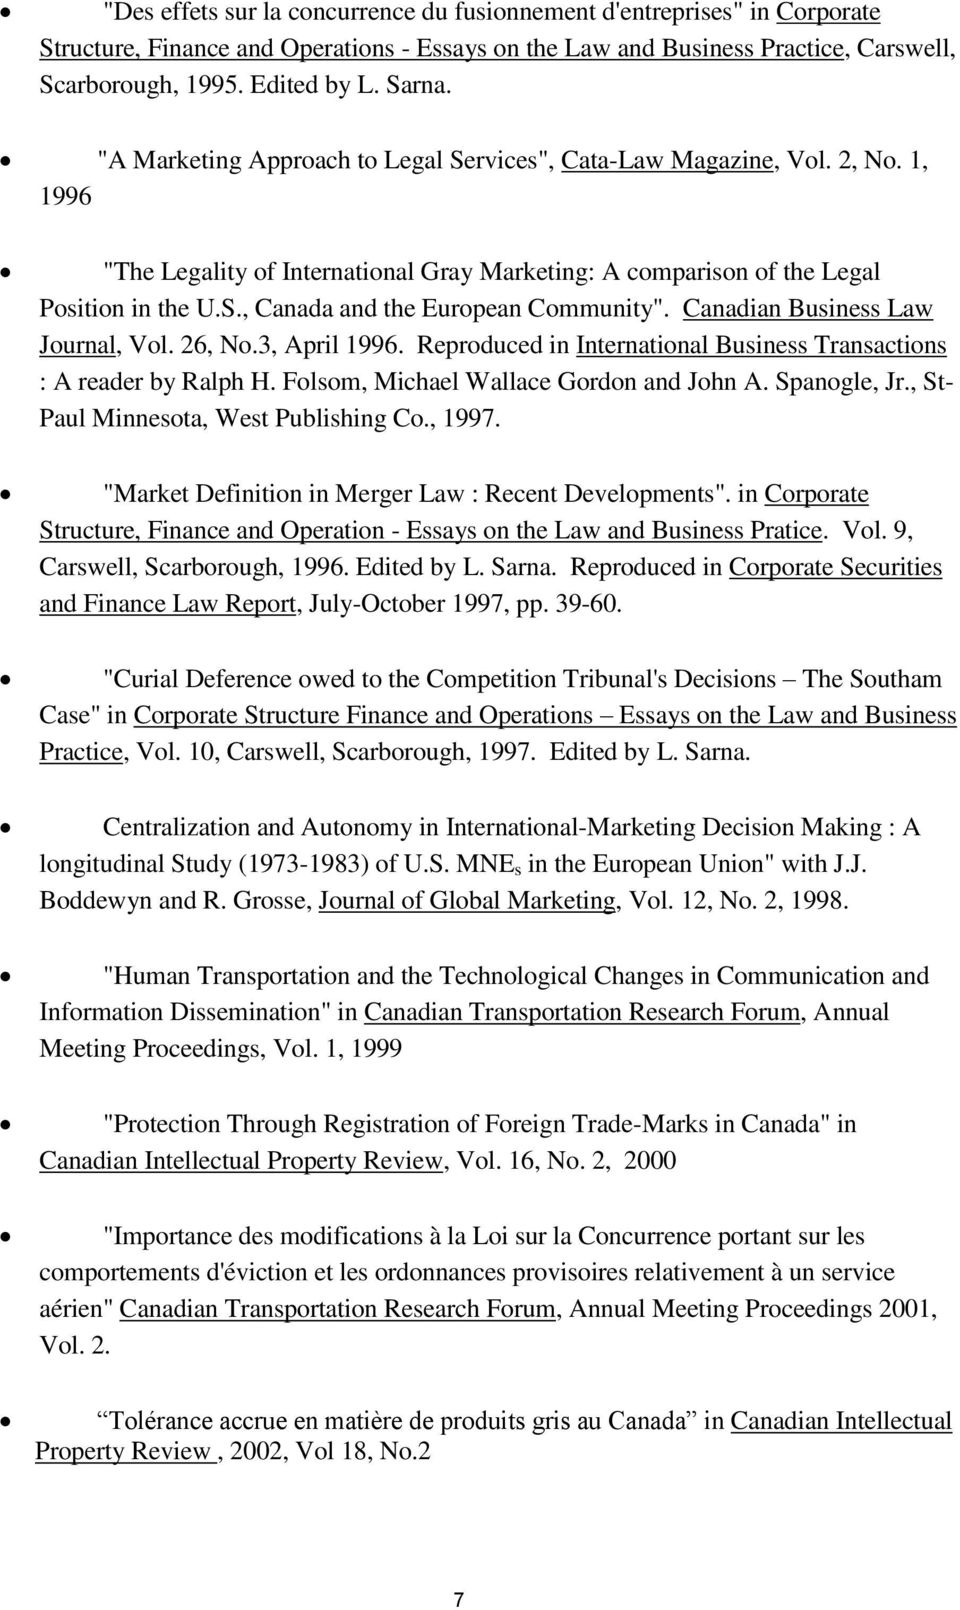 Canadian Business Law Journal, Vol. 26, No.3, April 1996. Reproduced in International Business Transactions : A reader by Ralph H. Folsom, Michael Wallace Gordon and John A. Spanogle, Jr.